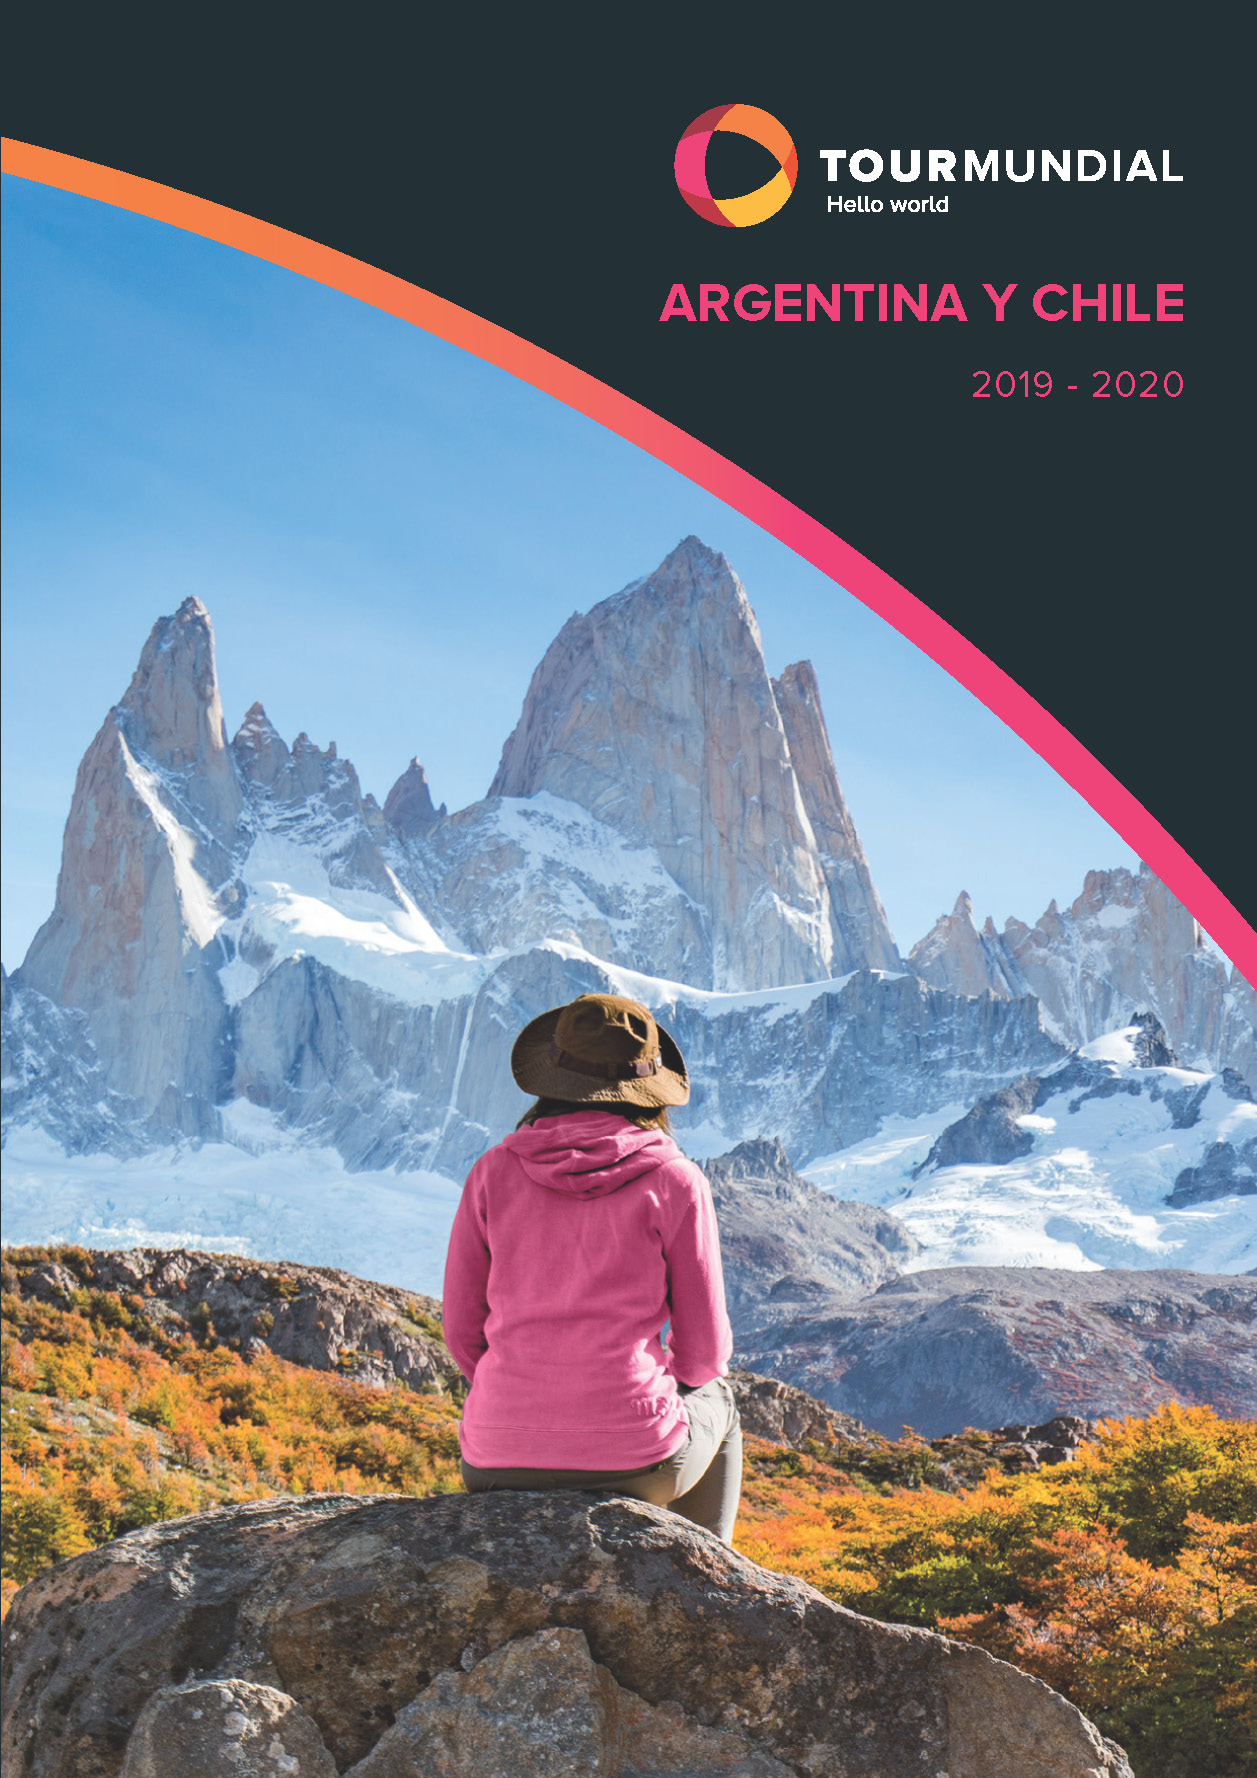 Catalogo Tourmundial Argentina y Chile 2019-2020